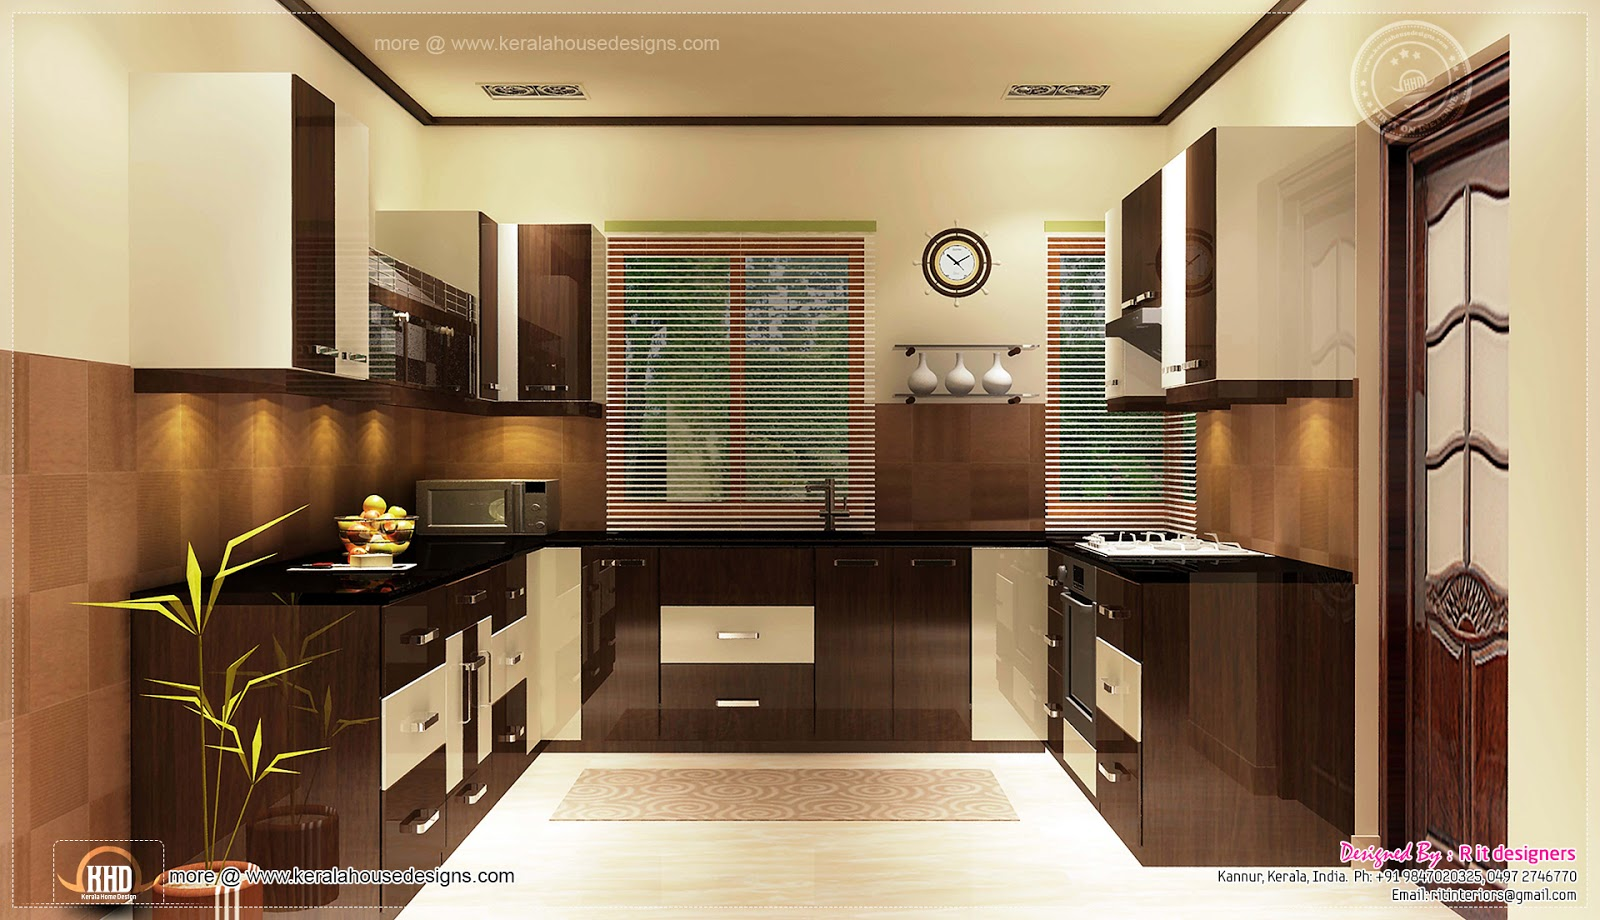 Kitchen Interior Design: Home Interior Designs By Rit Designers